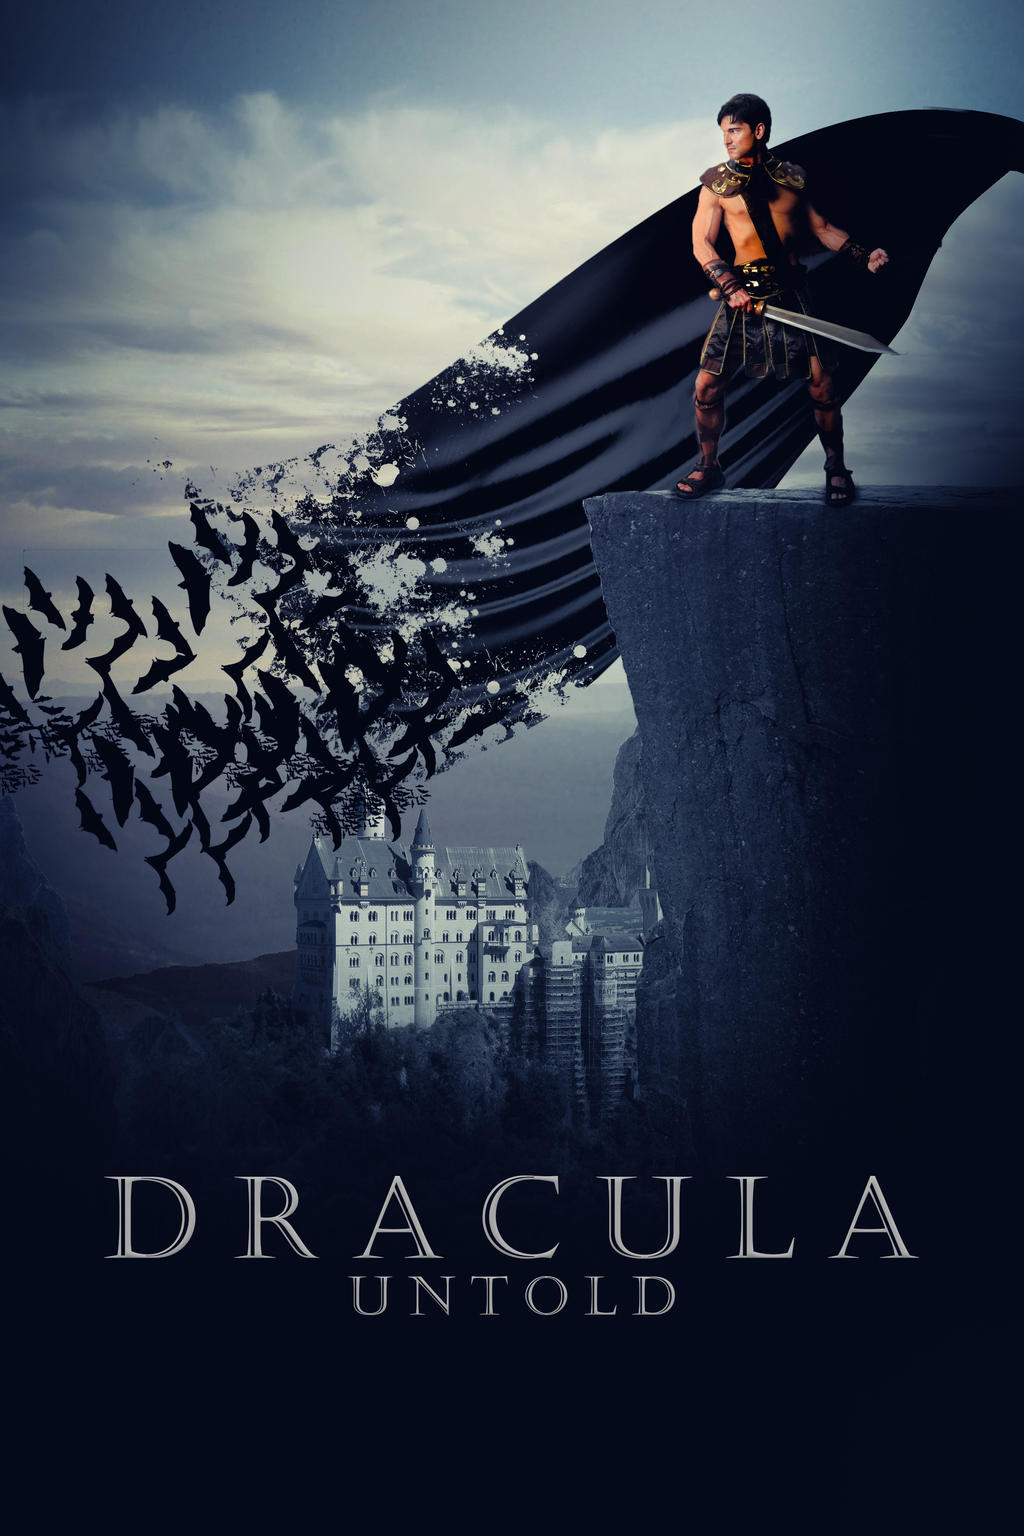 dracula untold movie poster design by nisarahamed28 on deviantart dracula untold movie poster design by